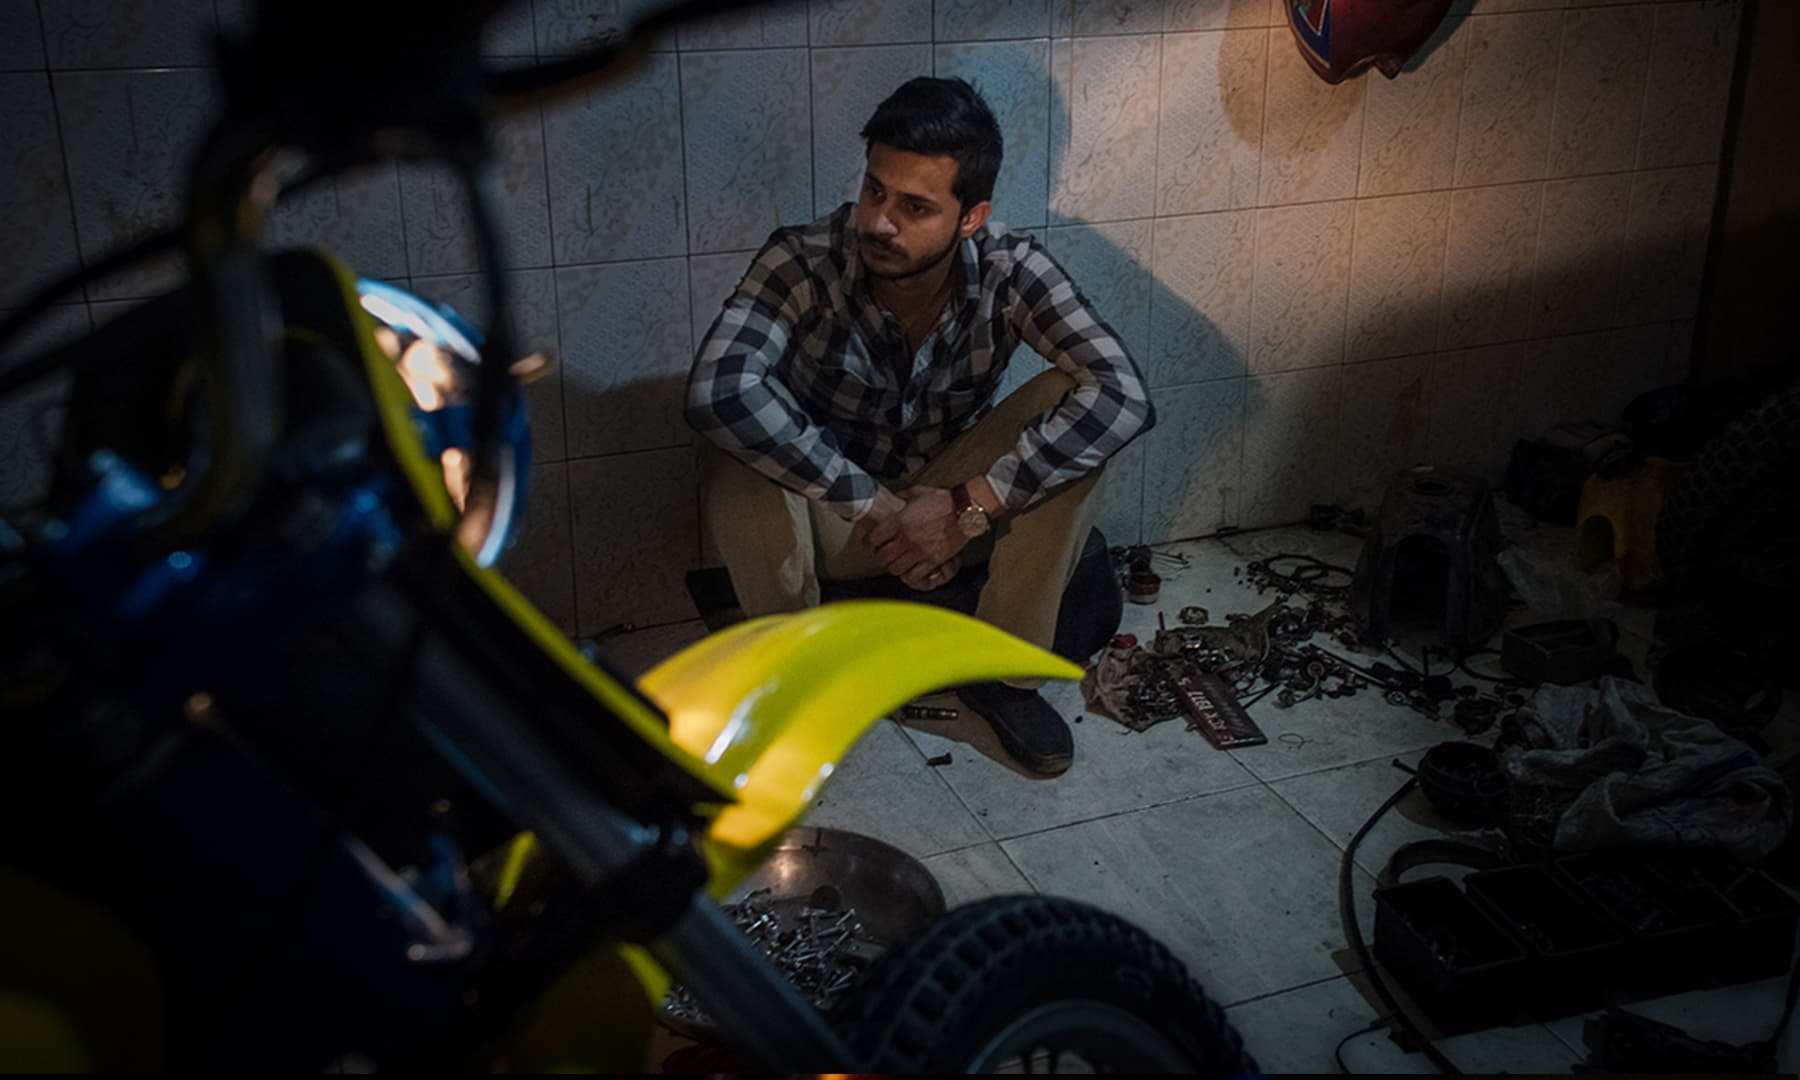 A biker watches as his motorcycle is upgraded at a mechanic's shop